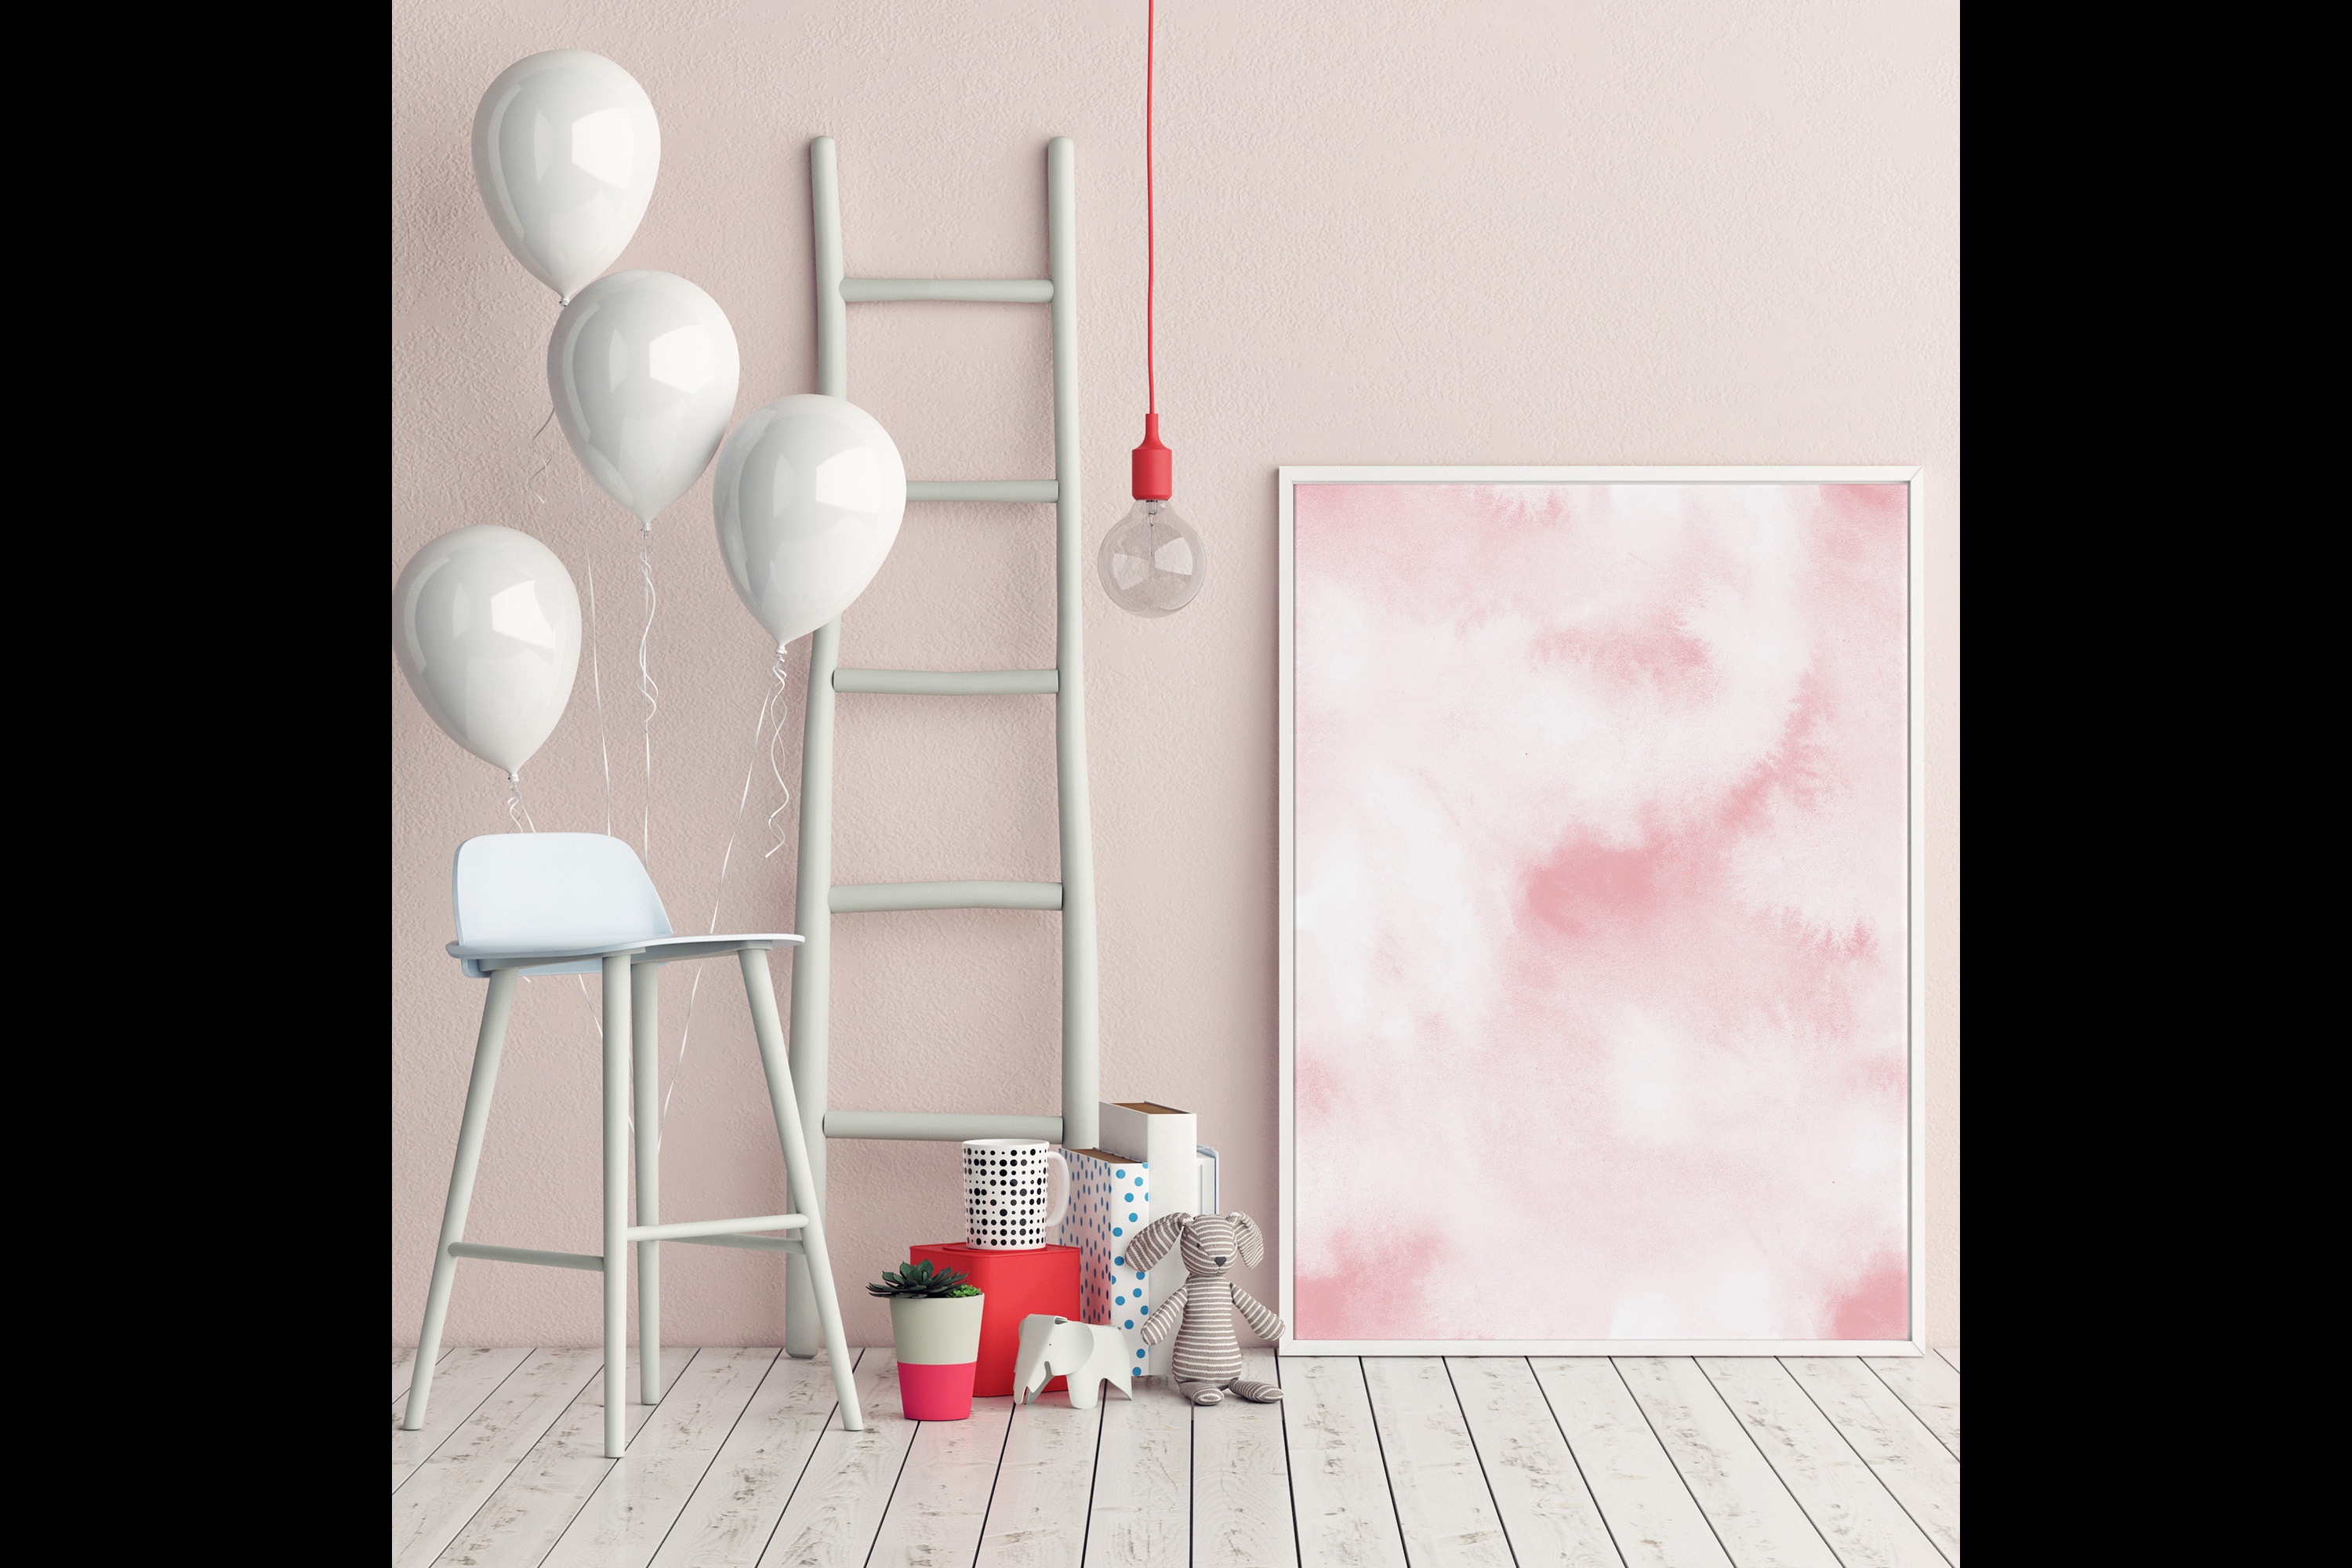 30 Watercolor Fairy Tale Cloudy Sky Baby Shower Paper Images example image 7